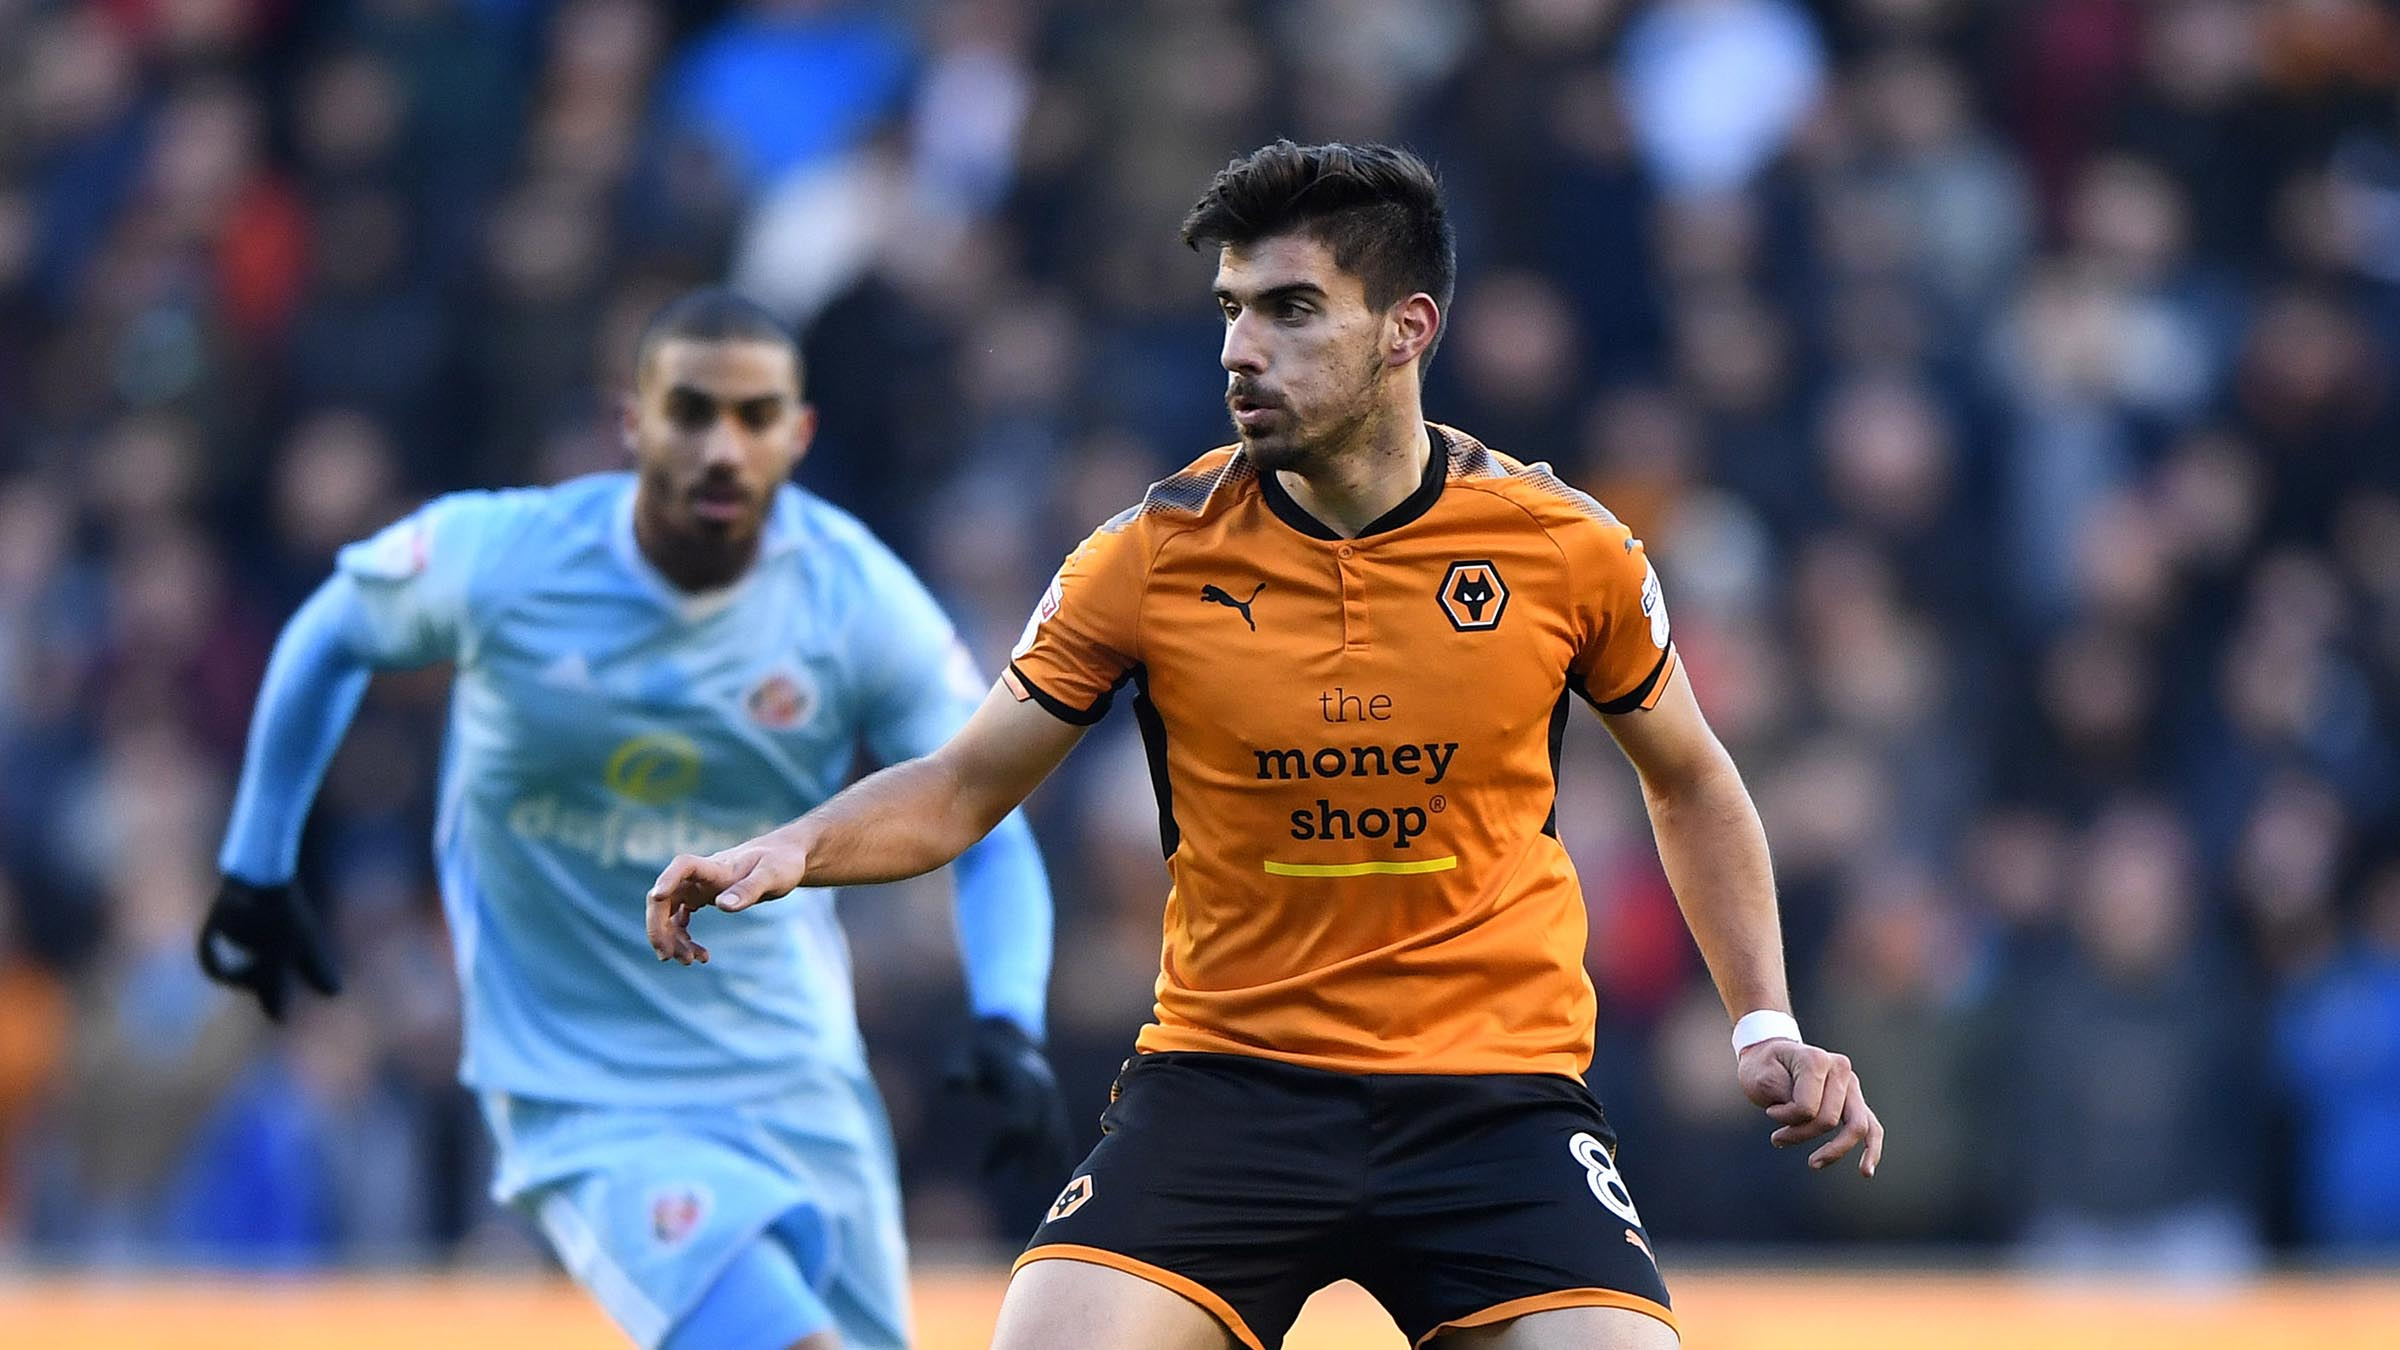 Ruben-neves-sunderland